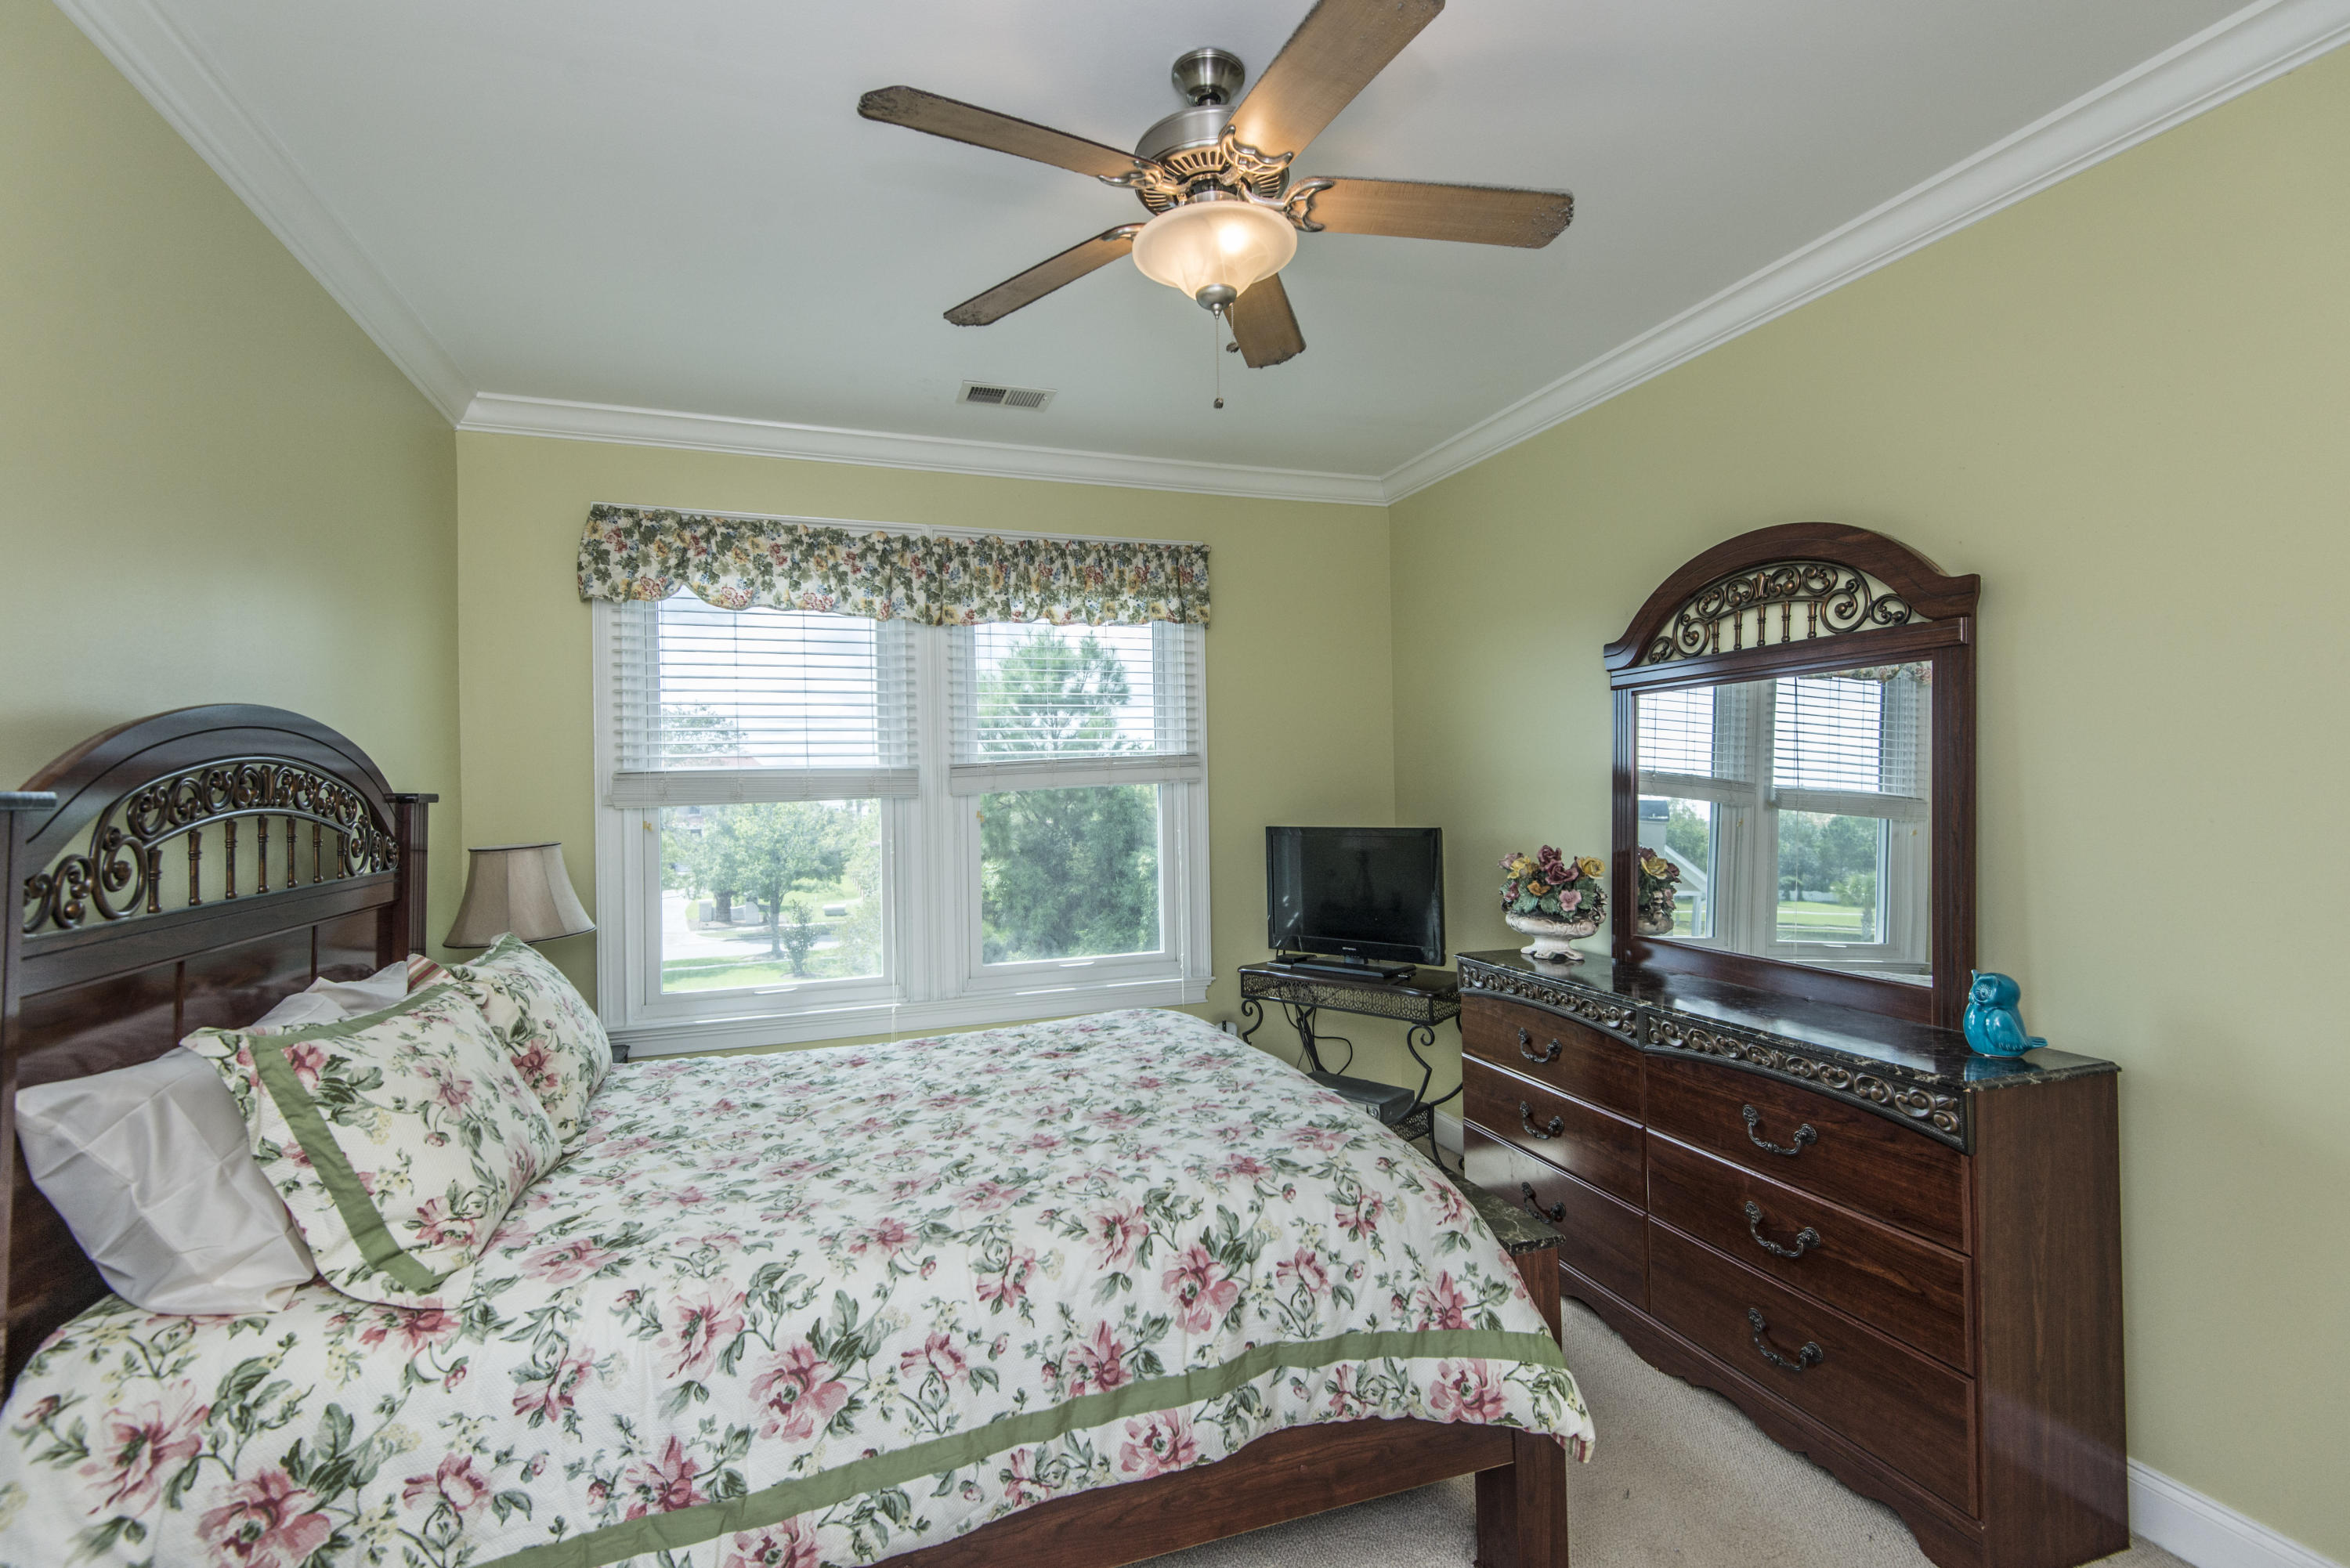 Rivertowne On The Wando Homes For Sale - 2006 Shields, Mount Pleasant, SC - 39